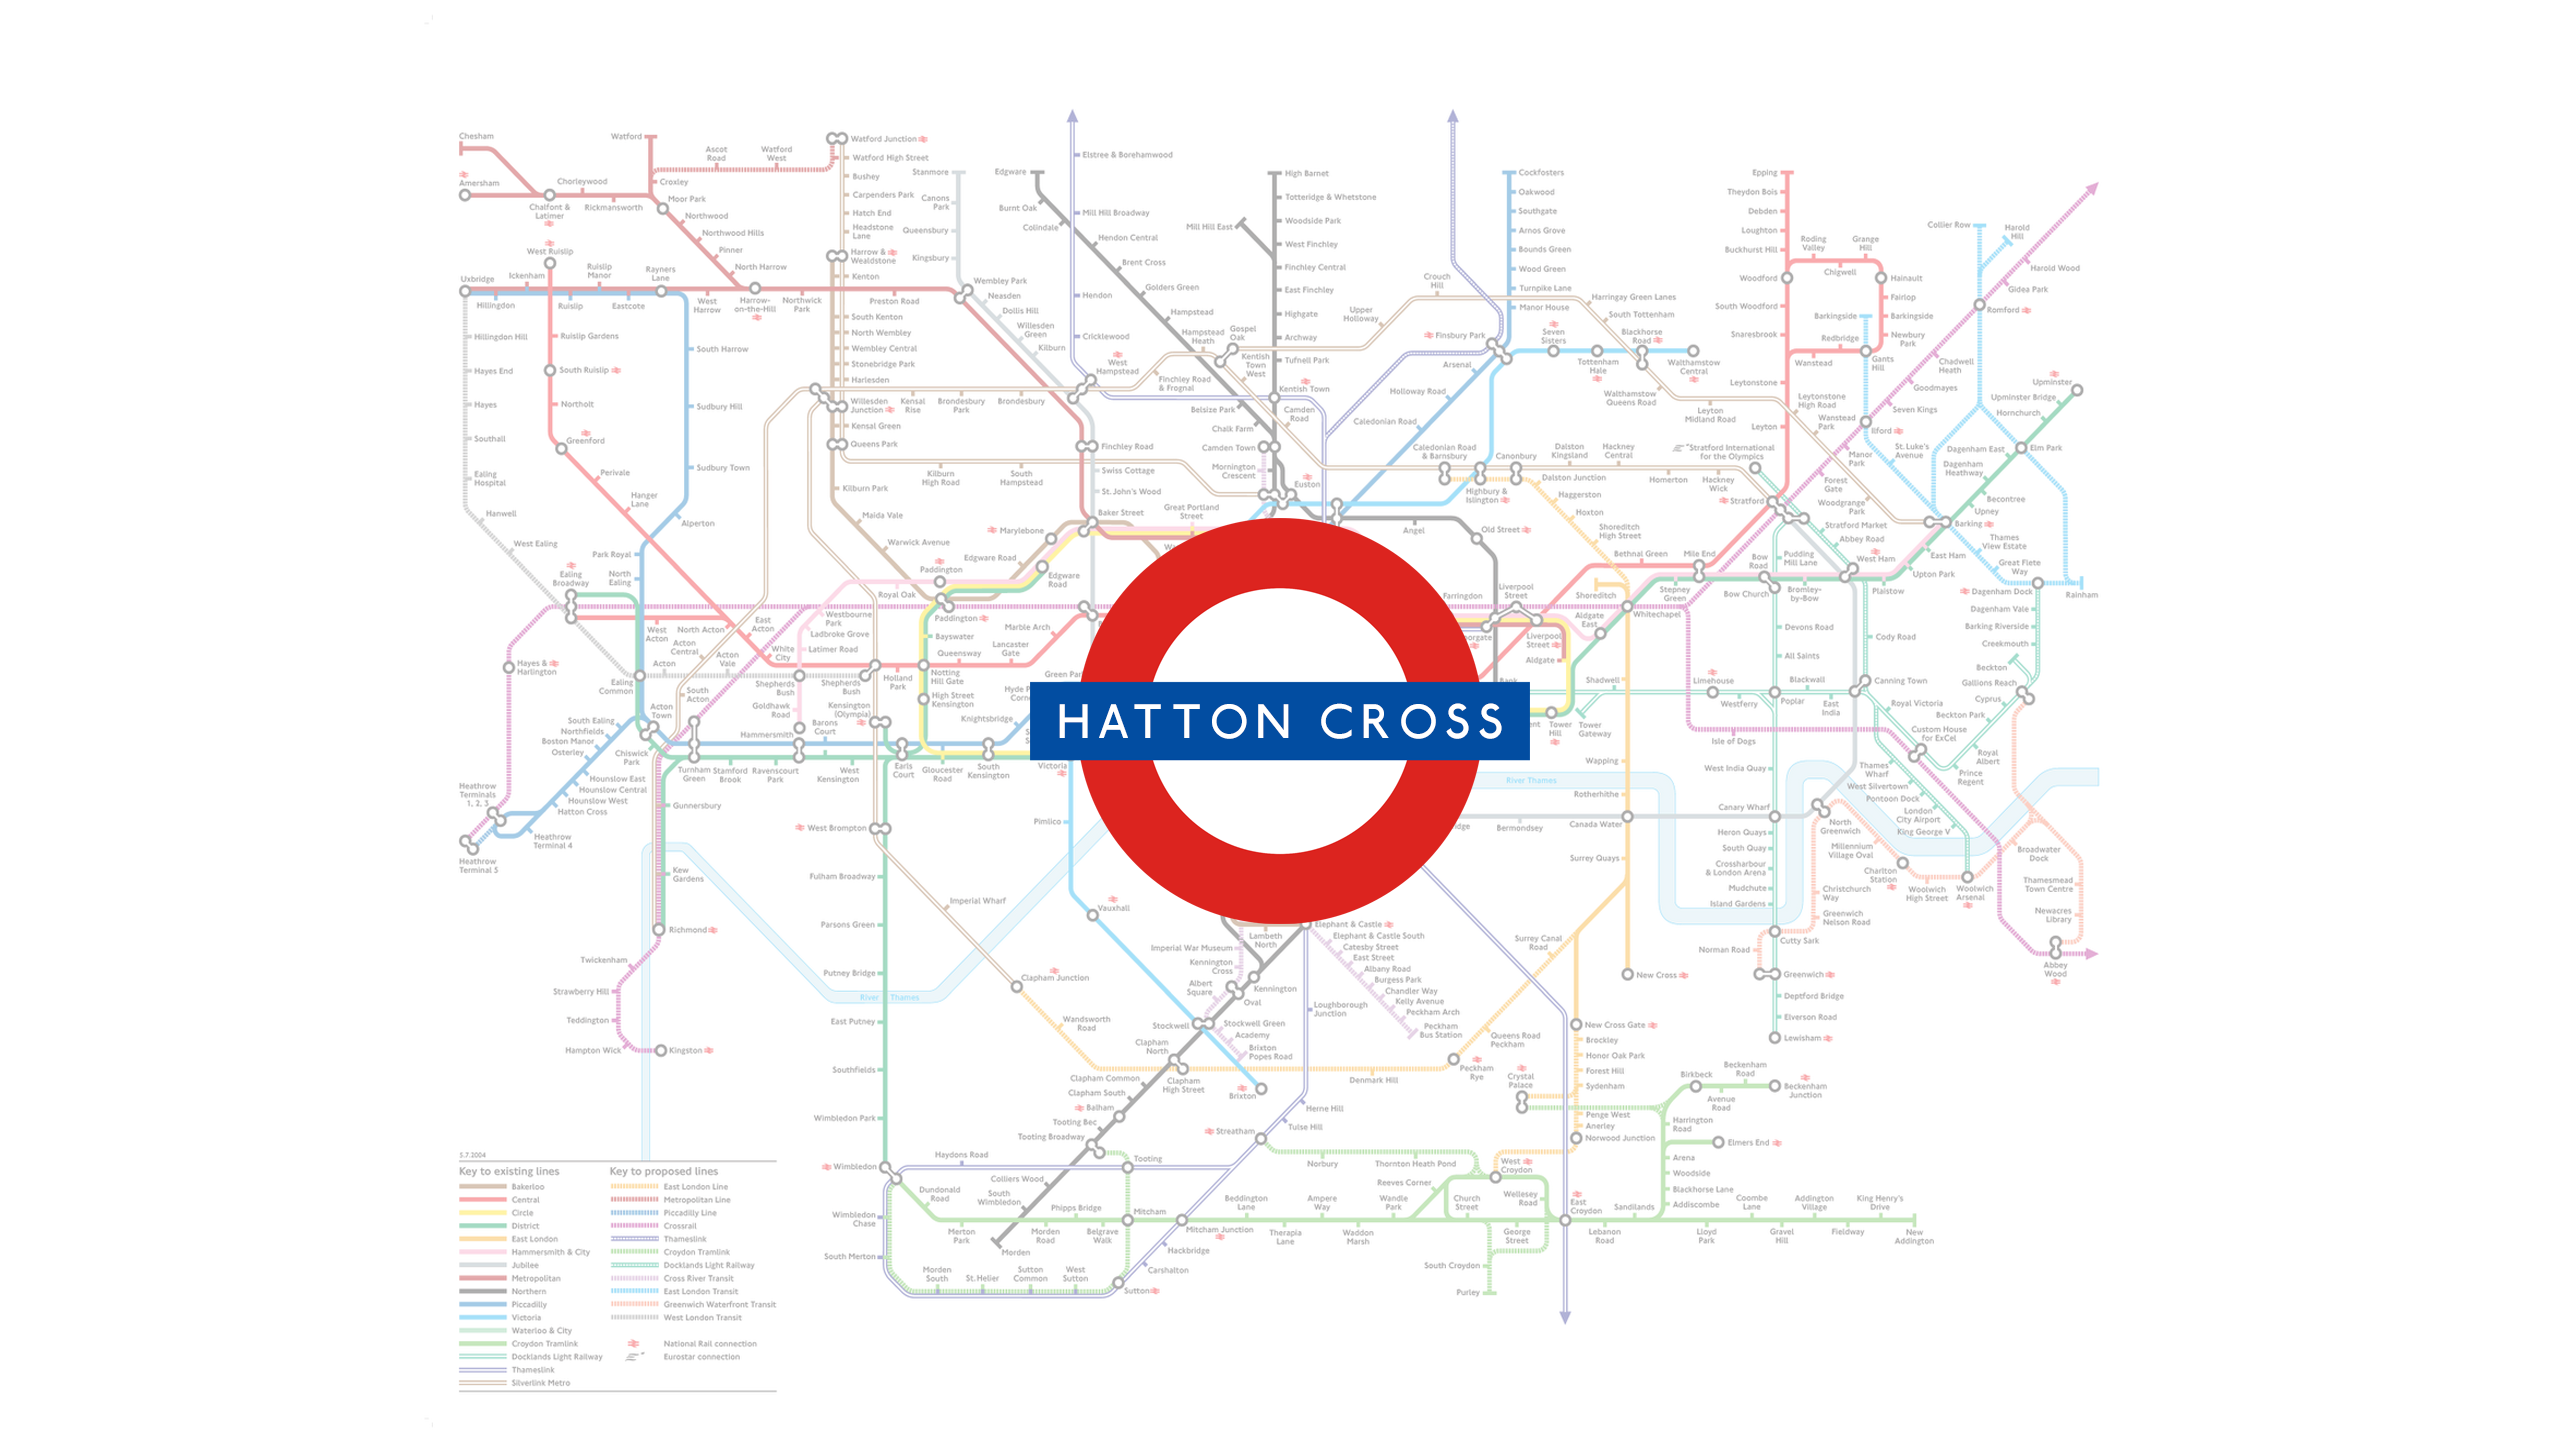 Hatton Cross (Map)